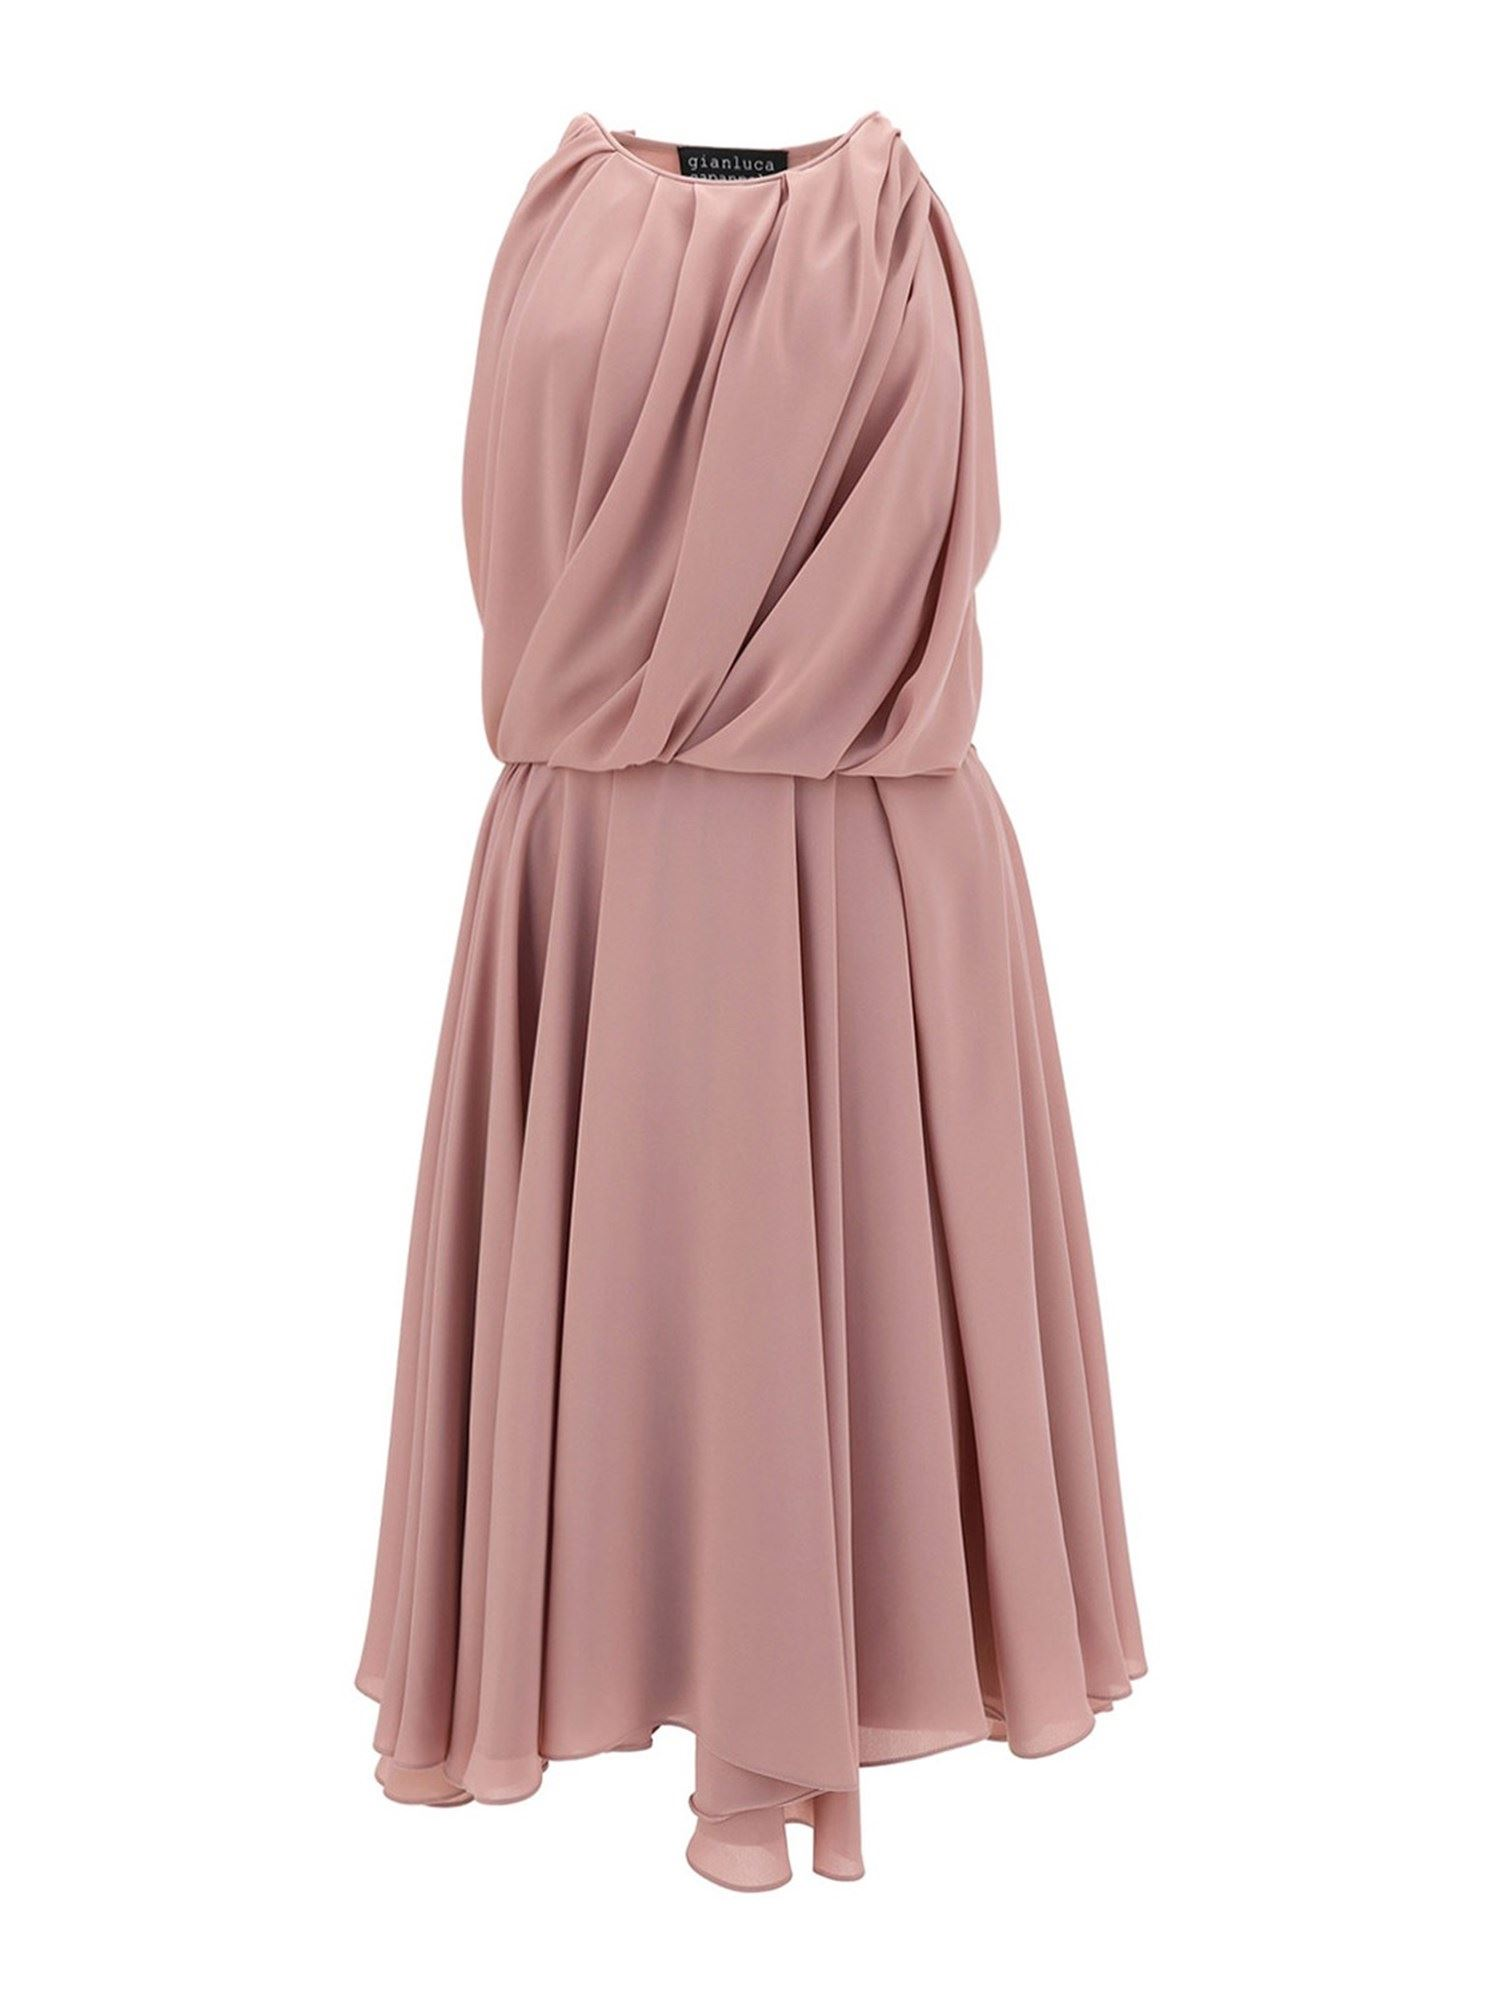 Gianluca Capannolo Dresses SILVANA DRESS IN PINK